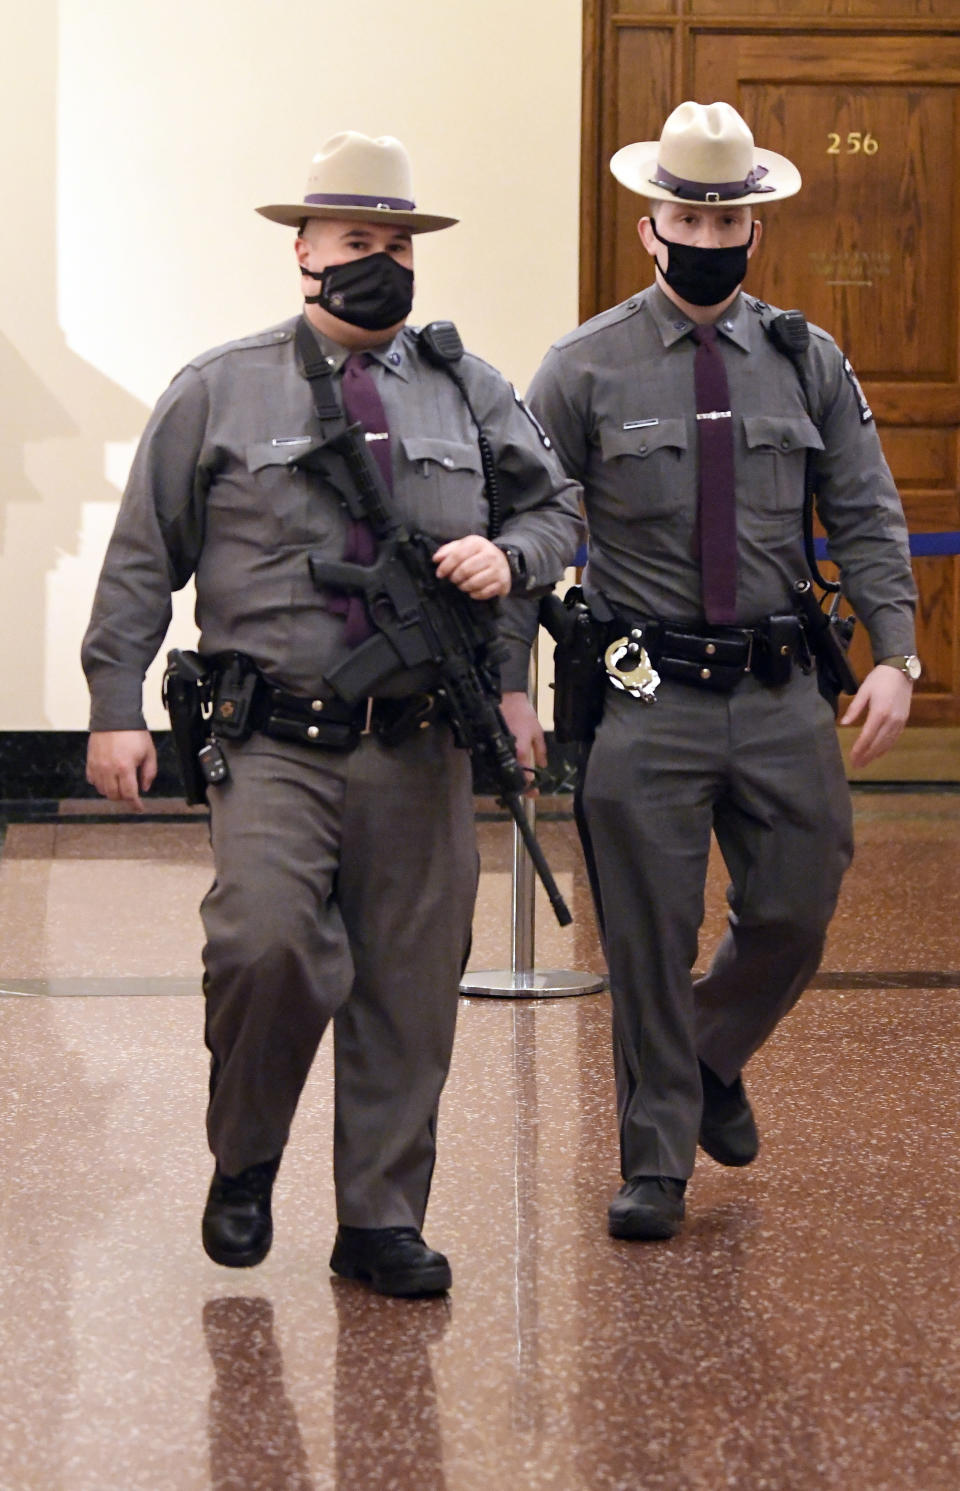 New York state Police patrol the hallways of the state Capitol prior to a planned President Trump protest rally ahead of the inauguration of President-elect Joe Biden and Vice President-elect Kamala Harris Sunday, Jan. 17, 2021, in Albany, N.Y. (AP Photo/Hans Pennink)